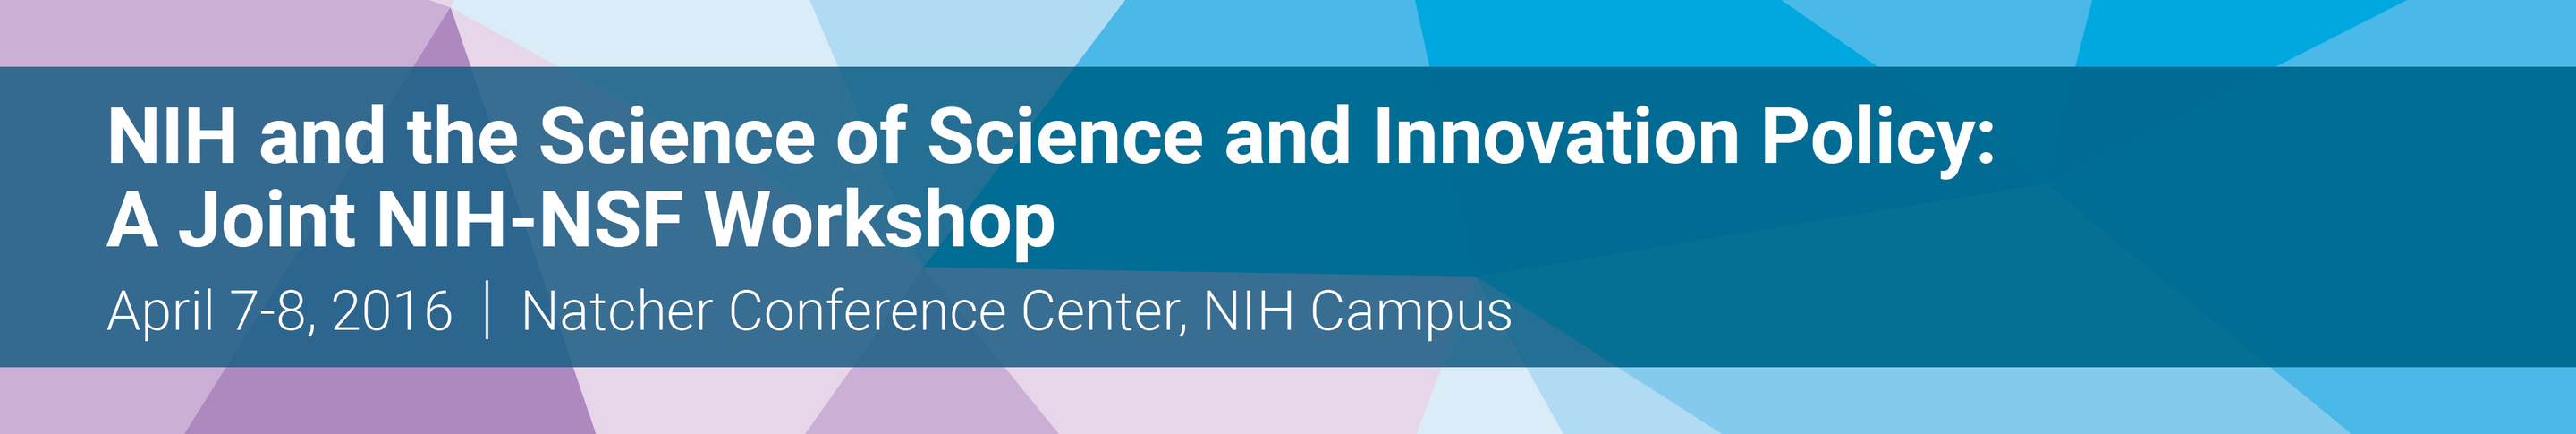 NIH and the Science of Science and Innovation Policy: A Joint NIH-NSF Workshop